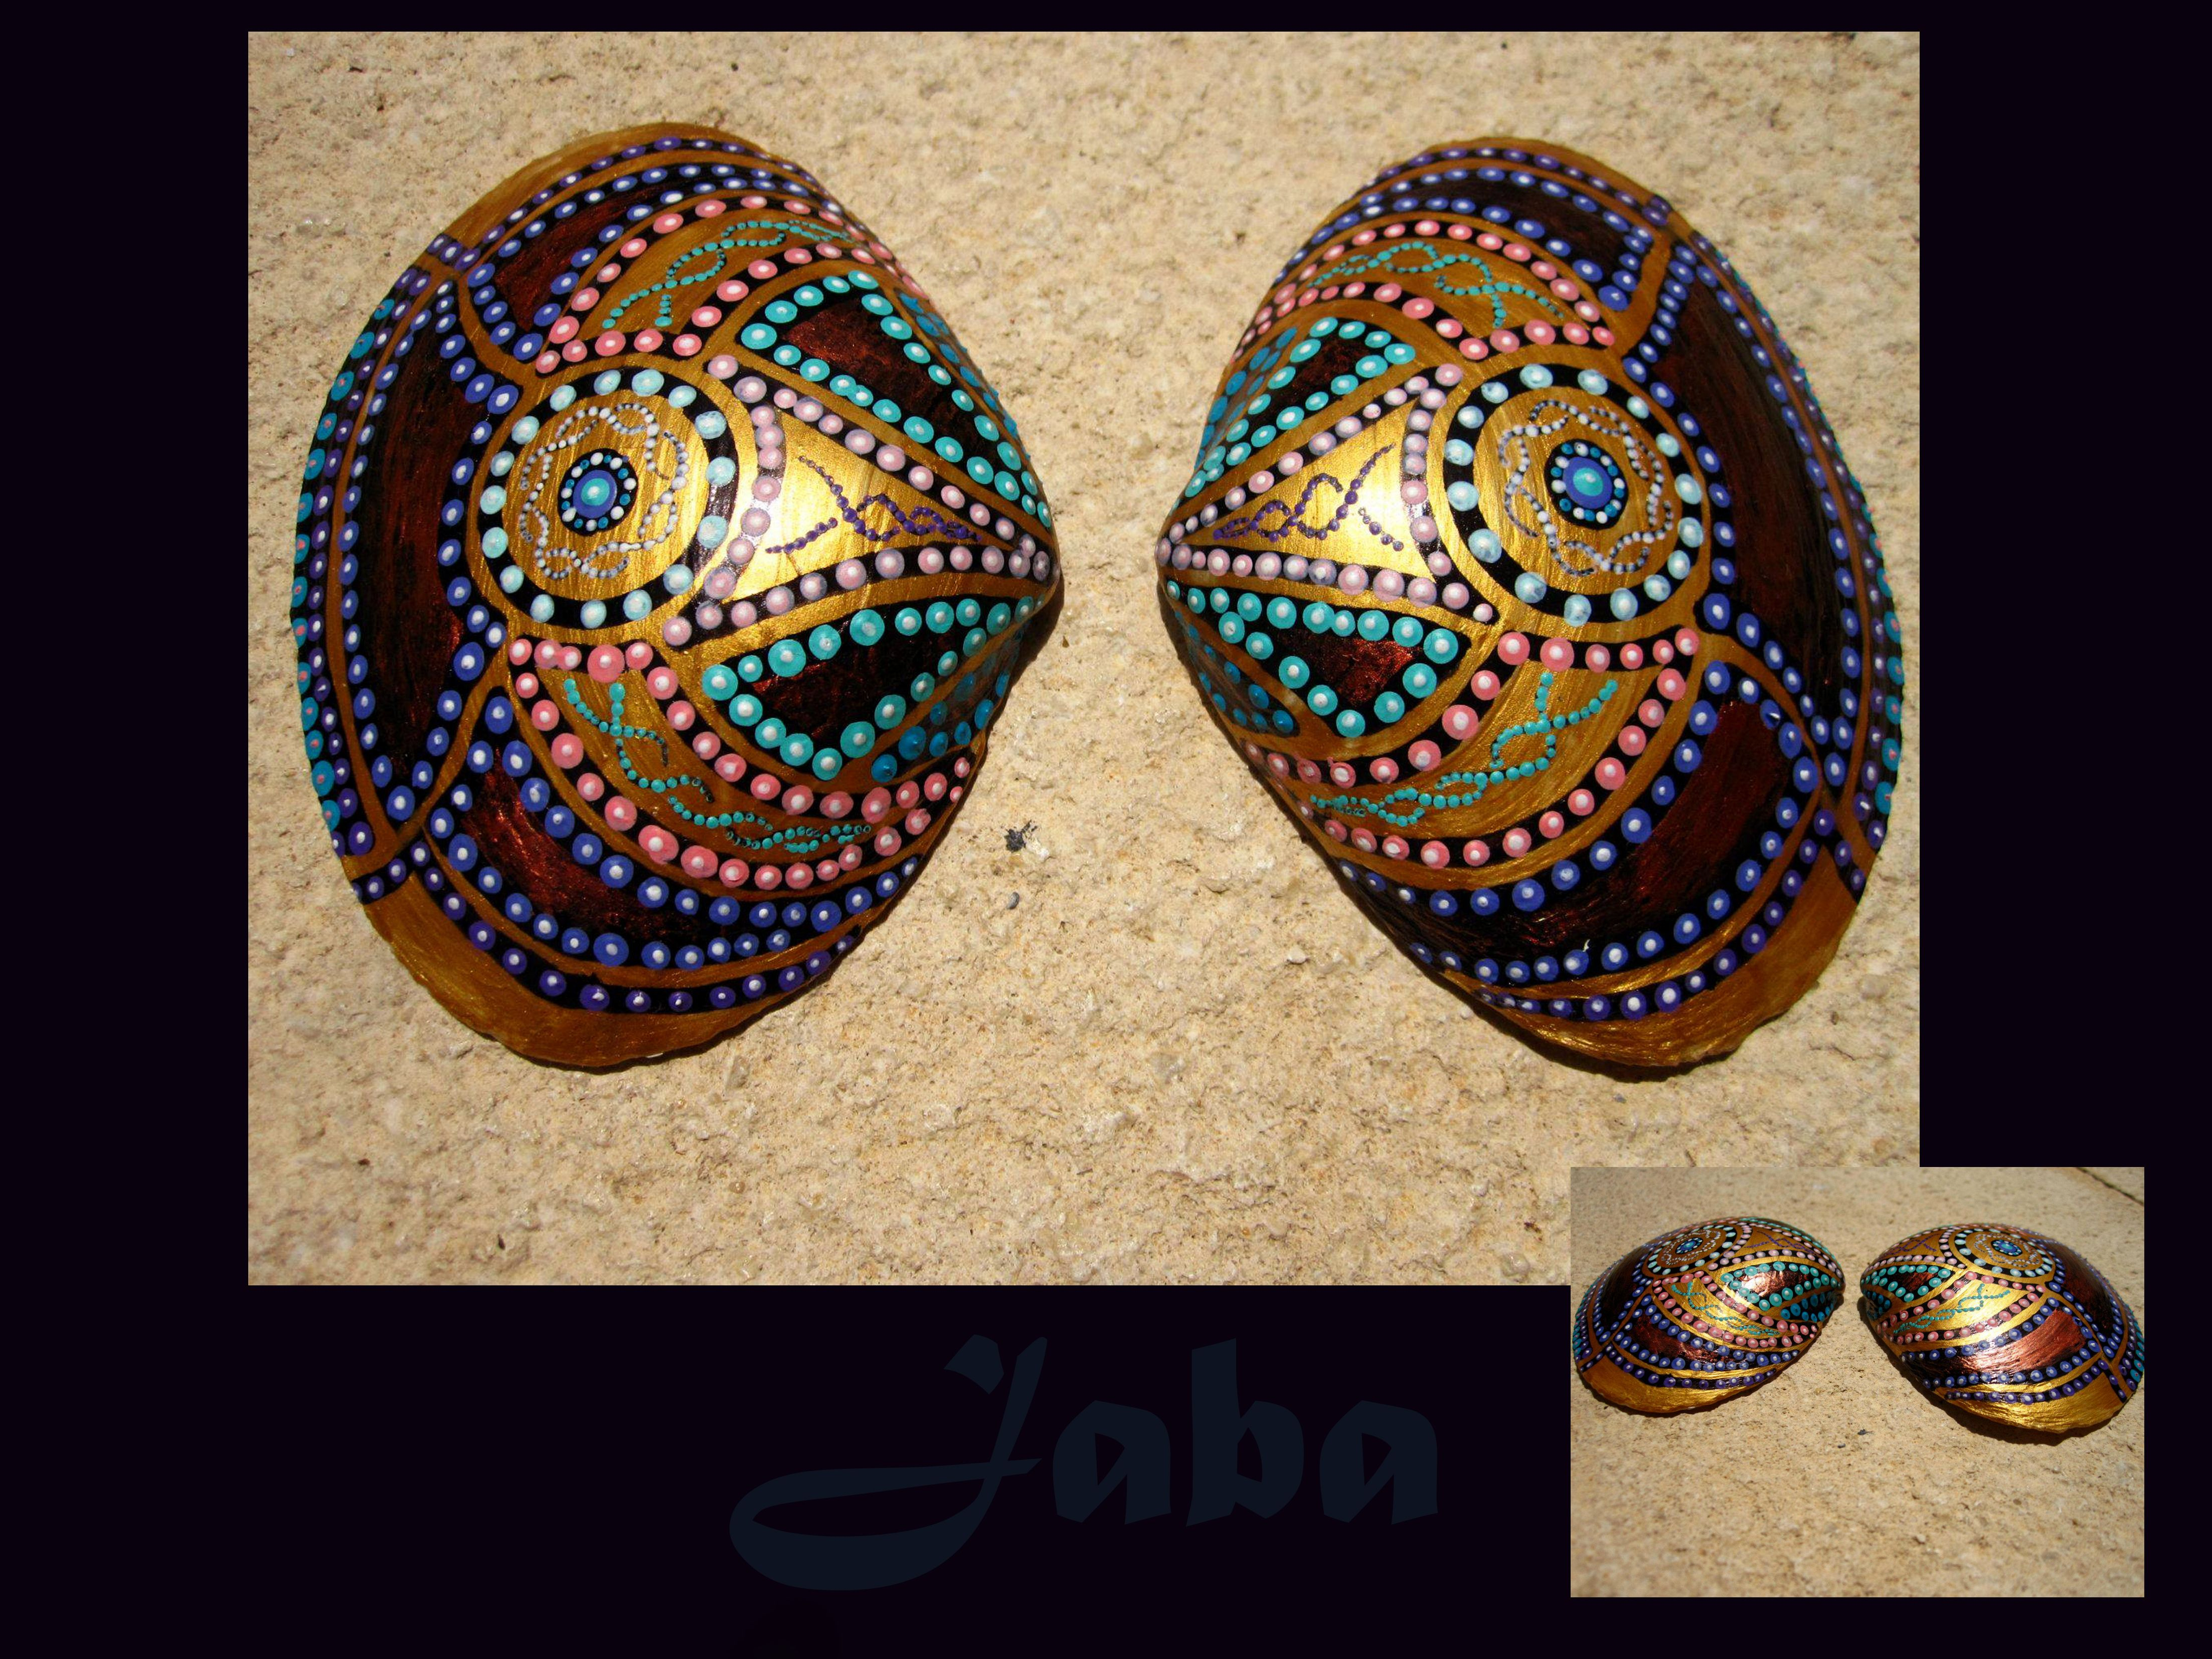 Pin By Gg On Pointilism Painted Shells Seashell